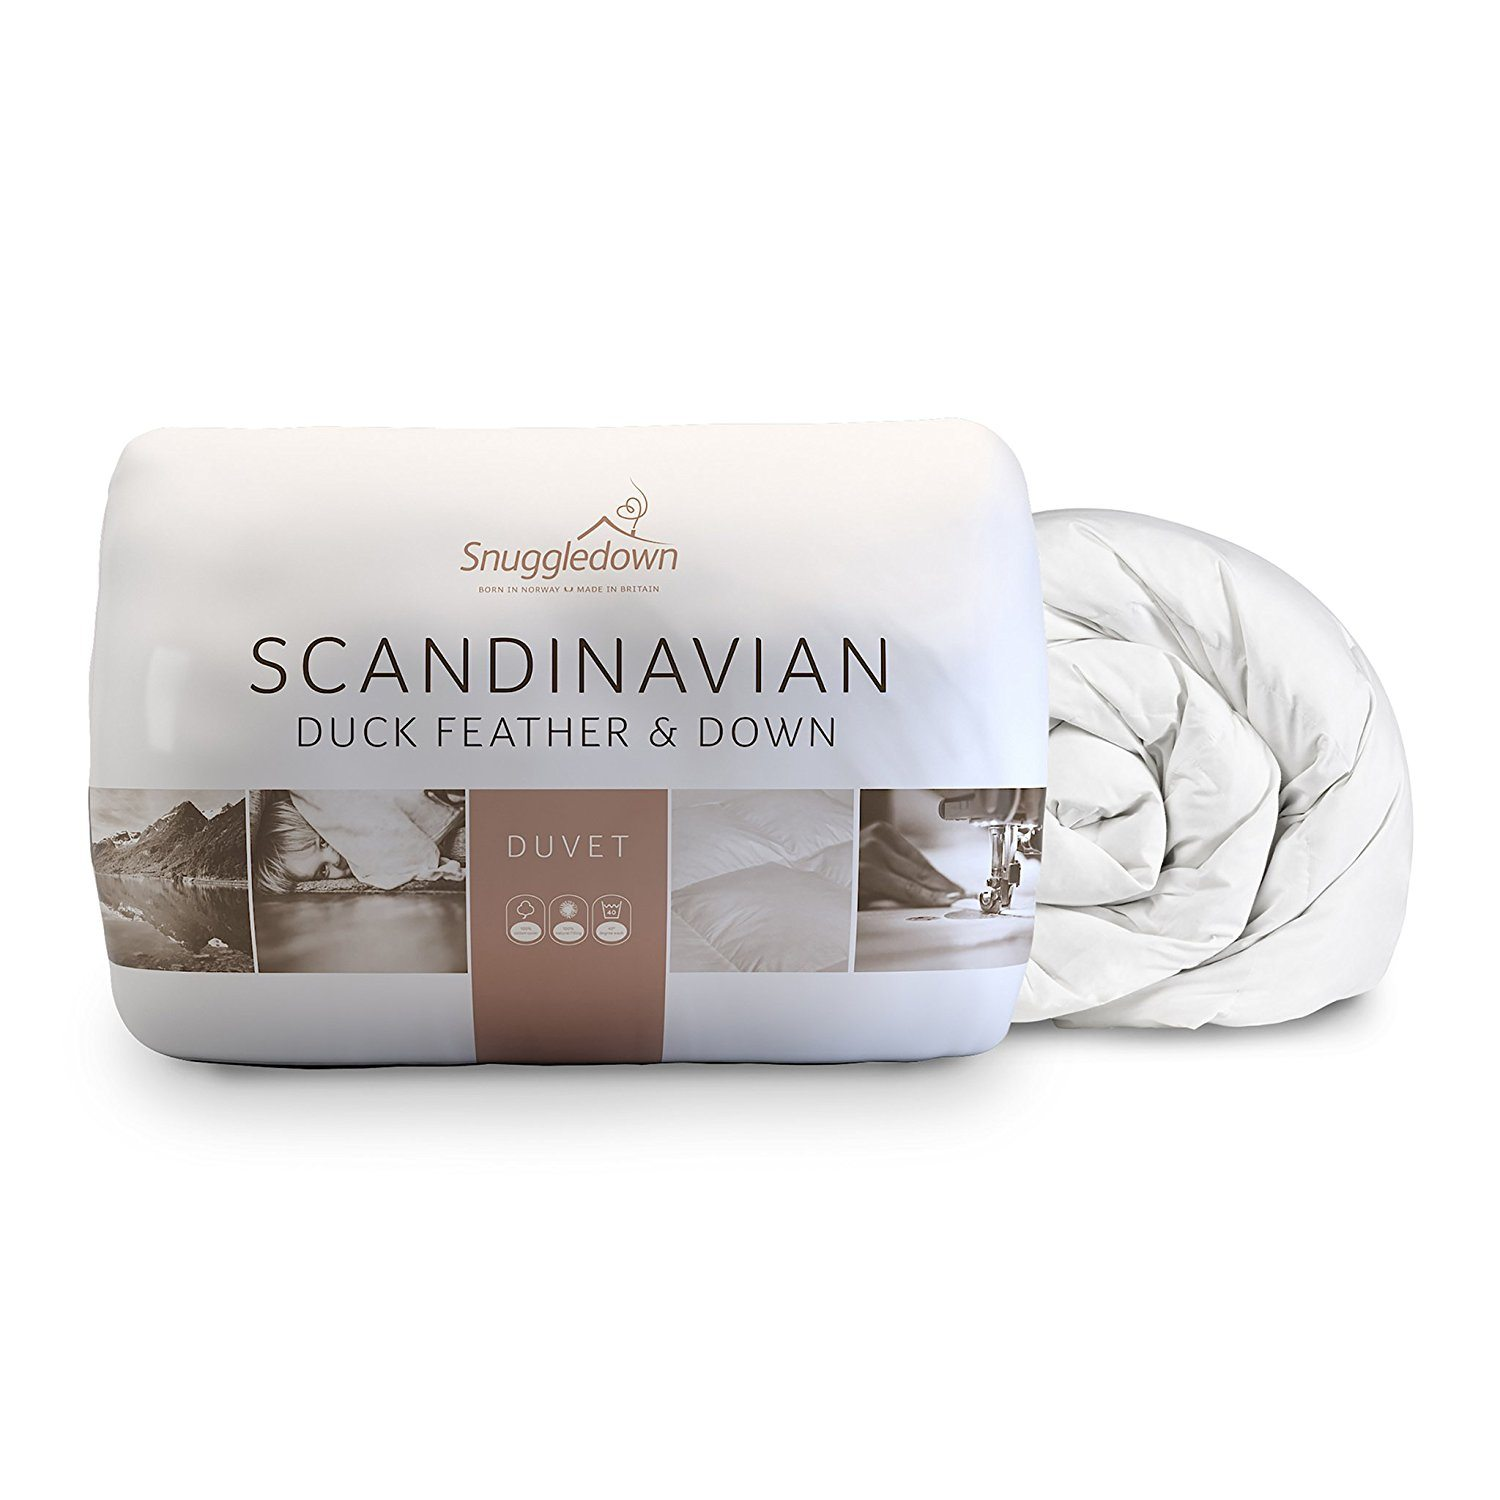 Snuggledown Scandinavian Duck Feather and Down Duvet